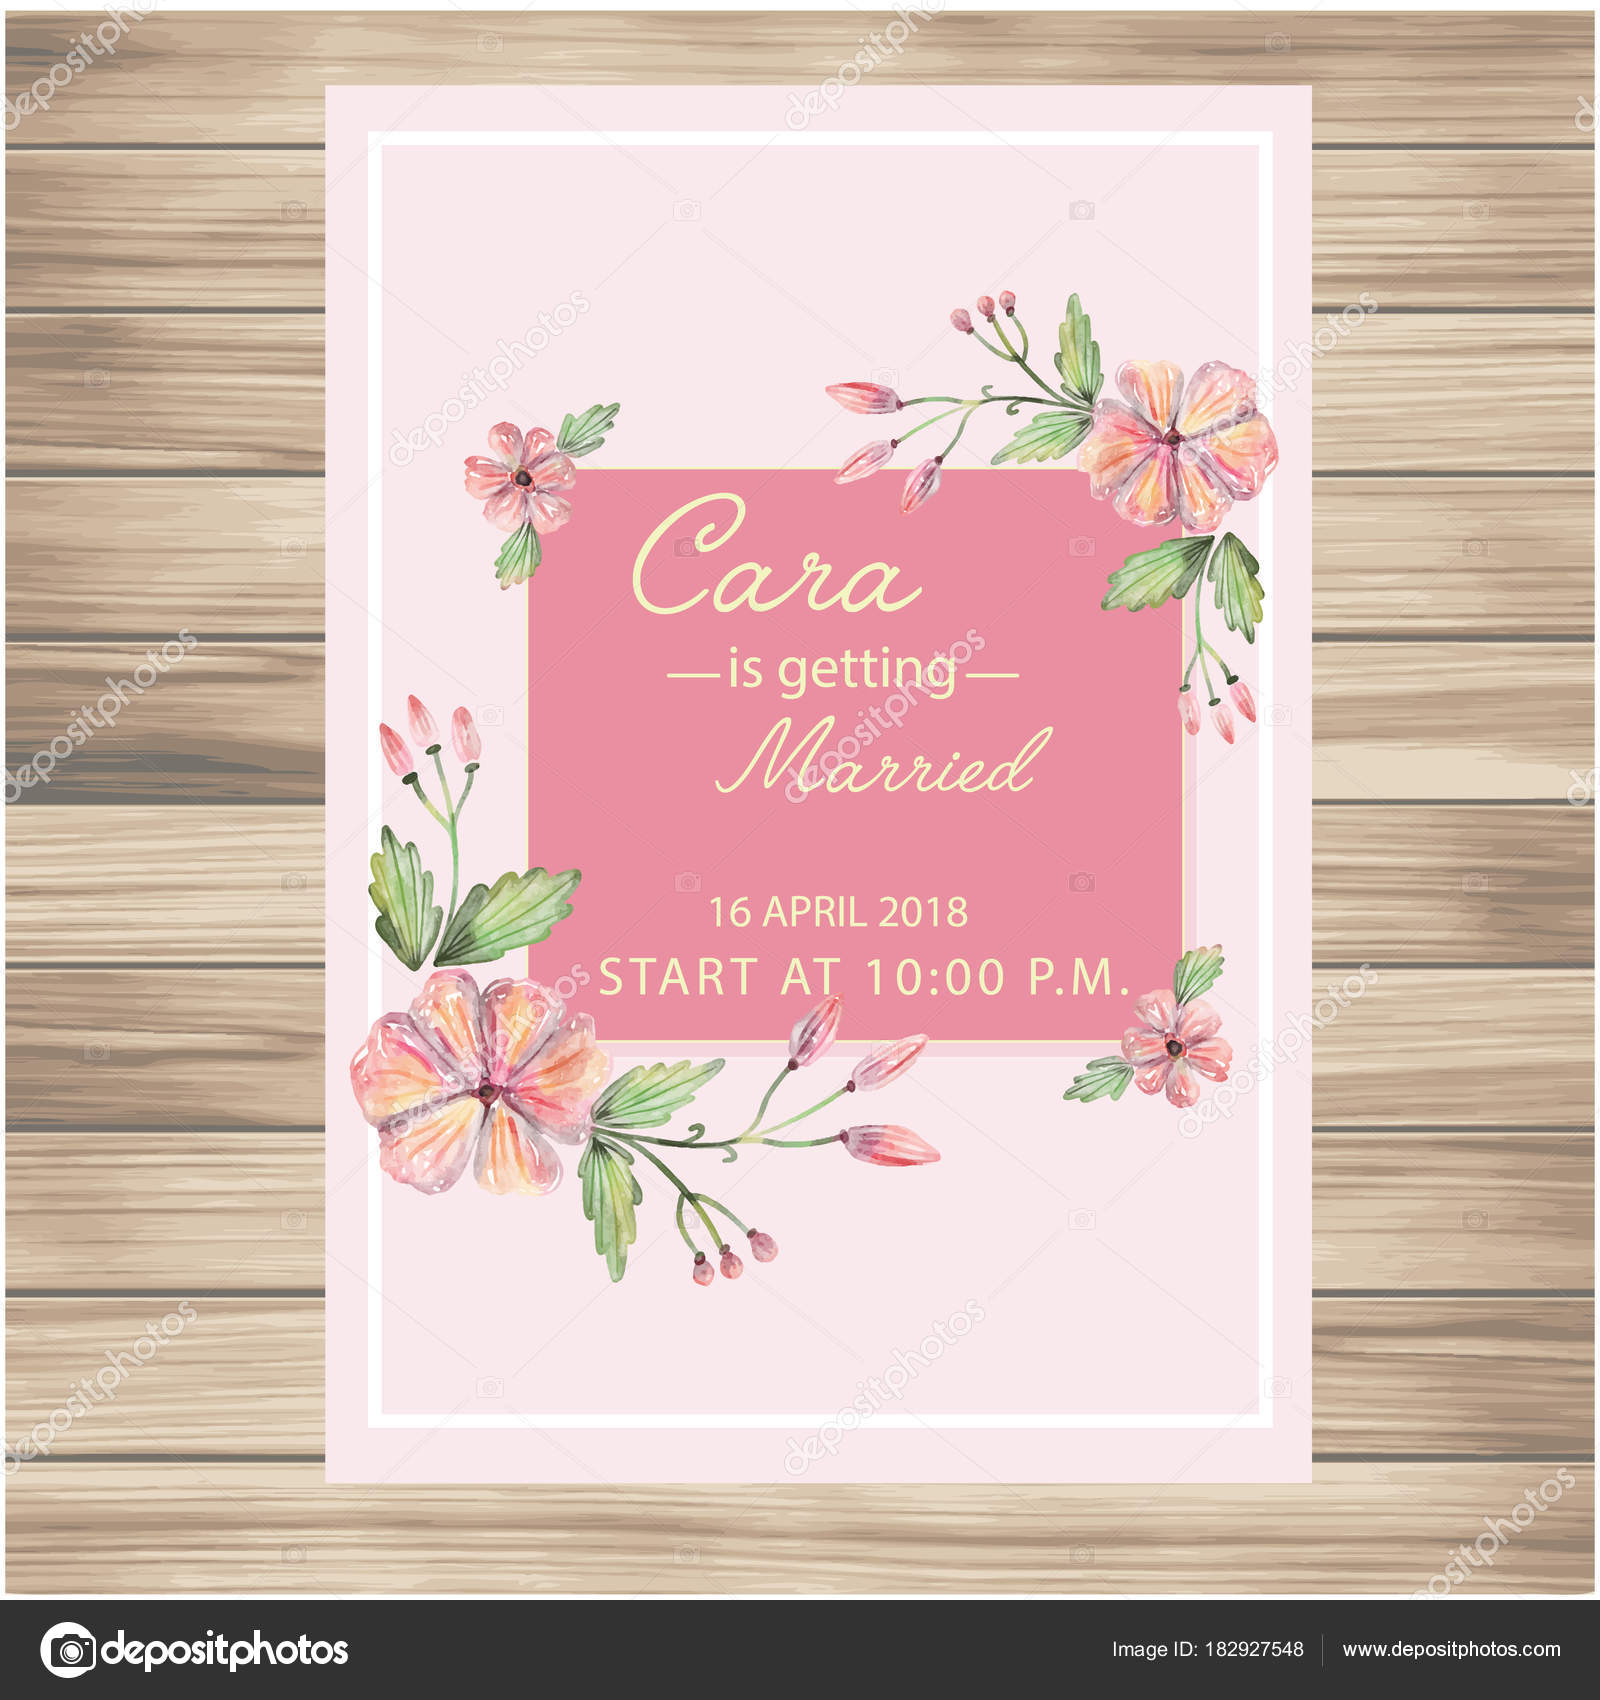 Wedding Invitation Pink Flowers Pink Background Vector Image — Stock ...